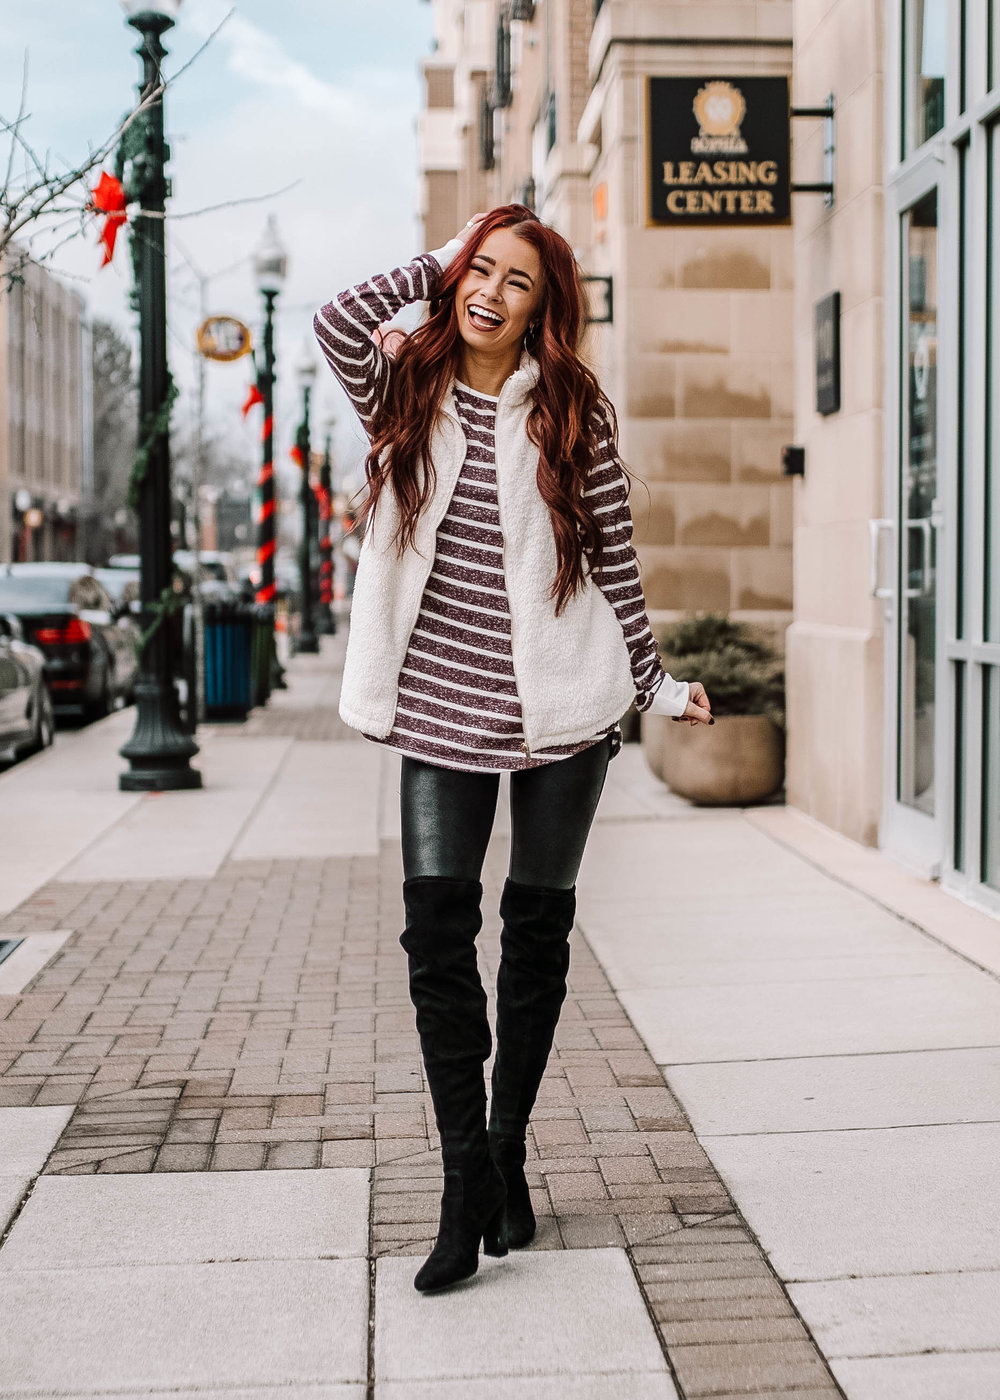 2019 Instagram Trends for Brands featured by top Indianapolis blogger and brand consultant, Trendy in Indy